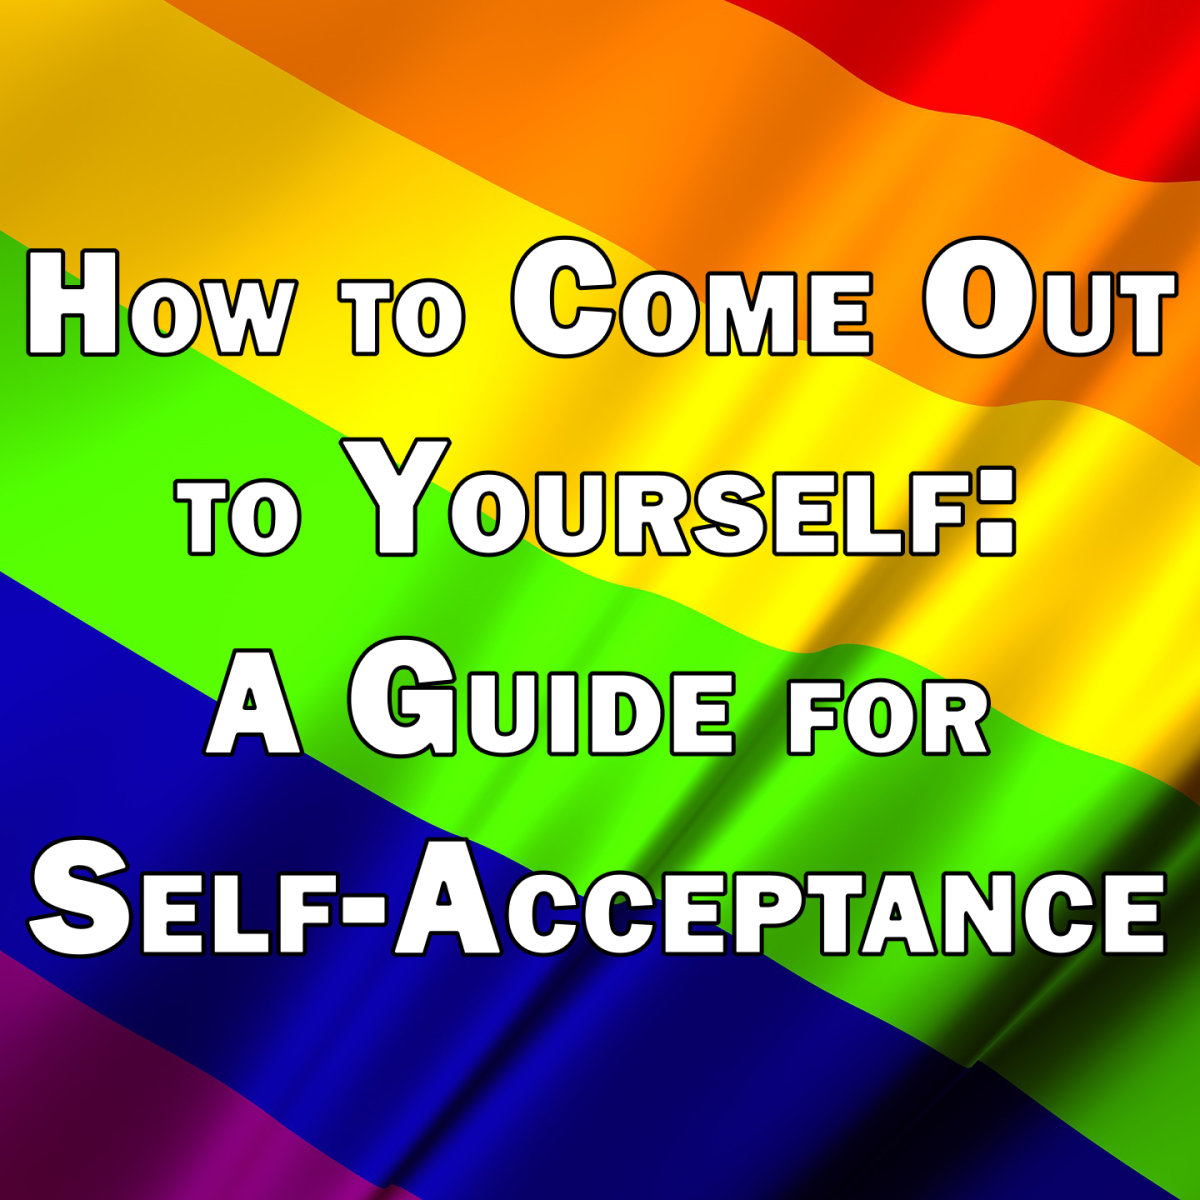 How to Come out to Yourself: A Guide for Self-Acceptance